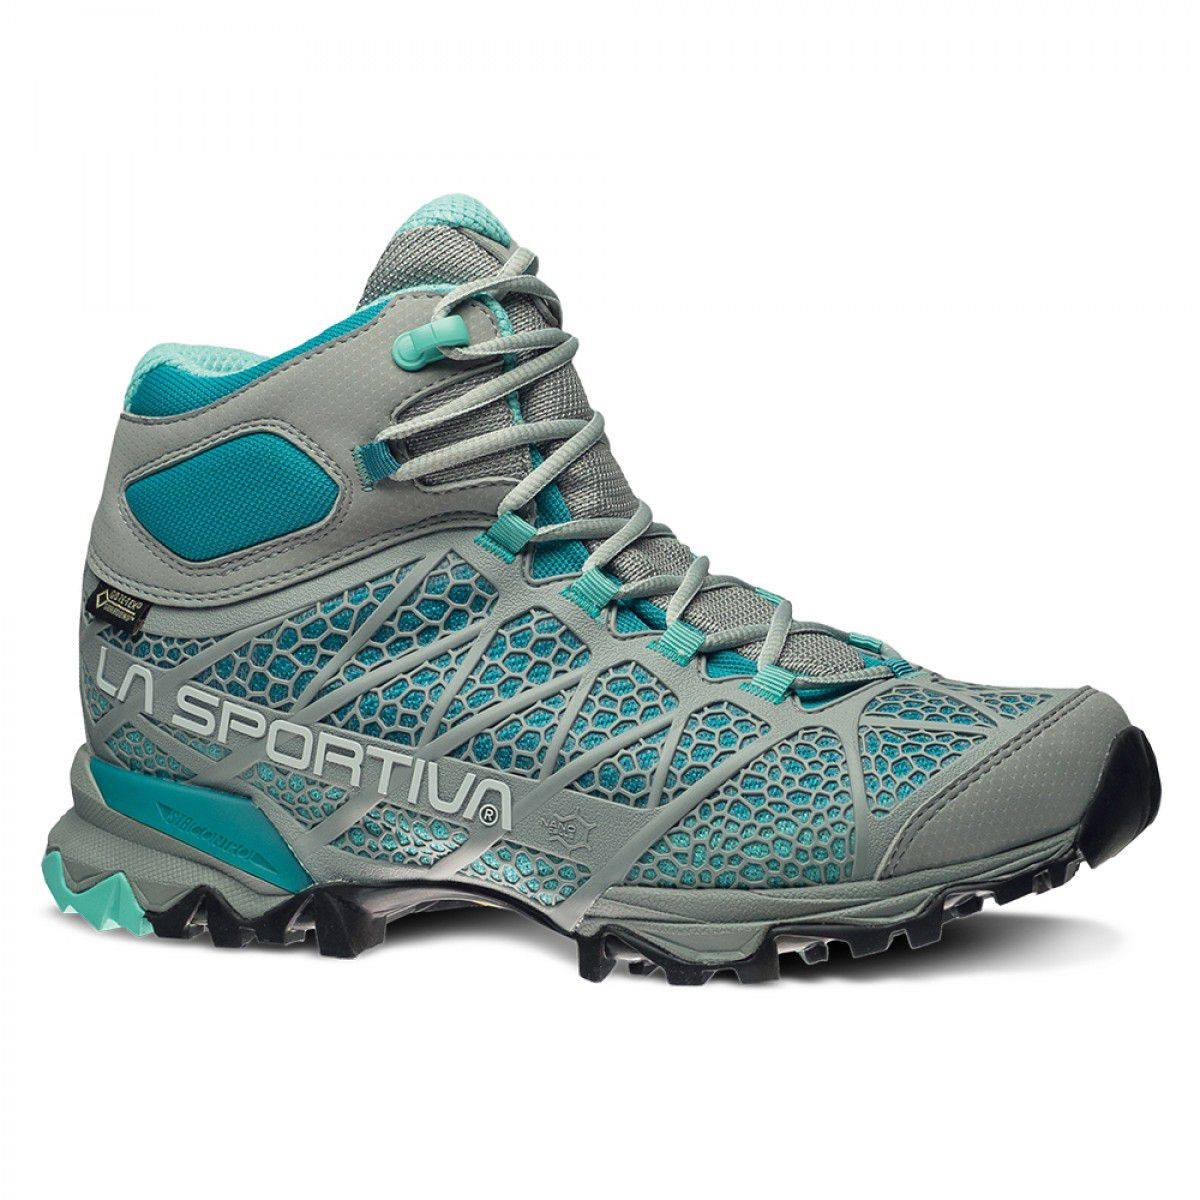 La Sportiva Core High GTX Woman